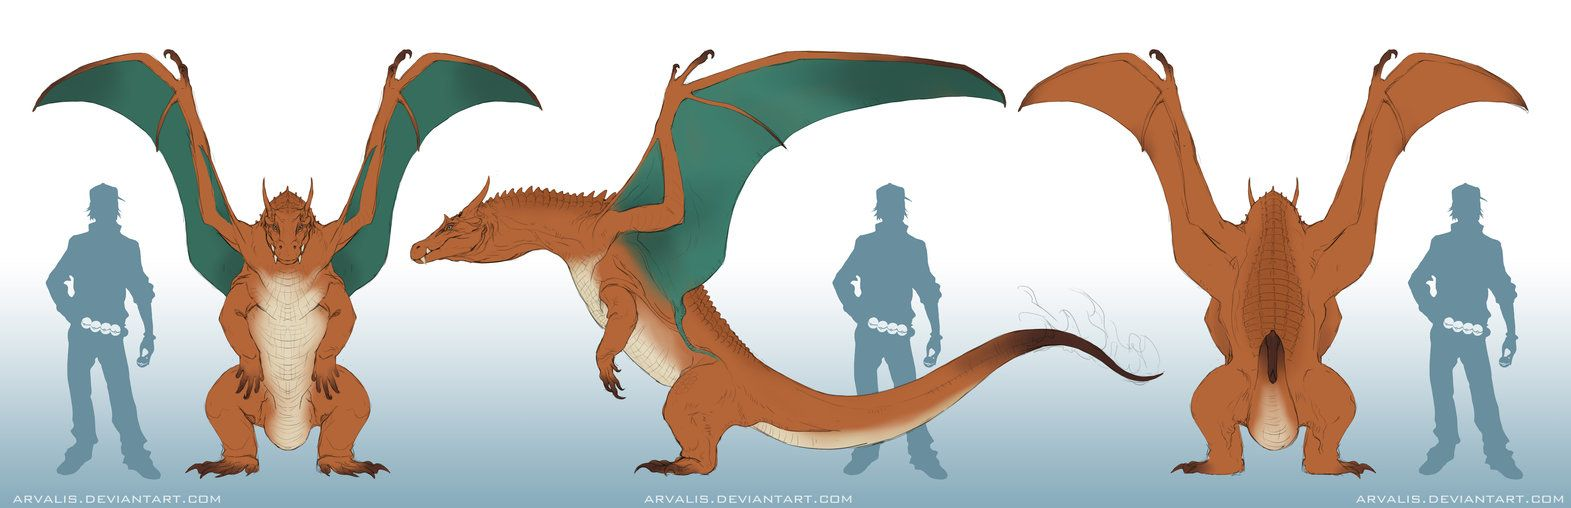 Charizard Orthographic by arvalis on DeviantArt